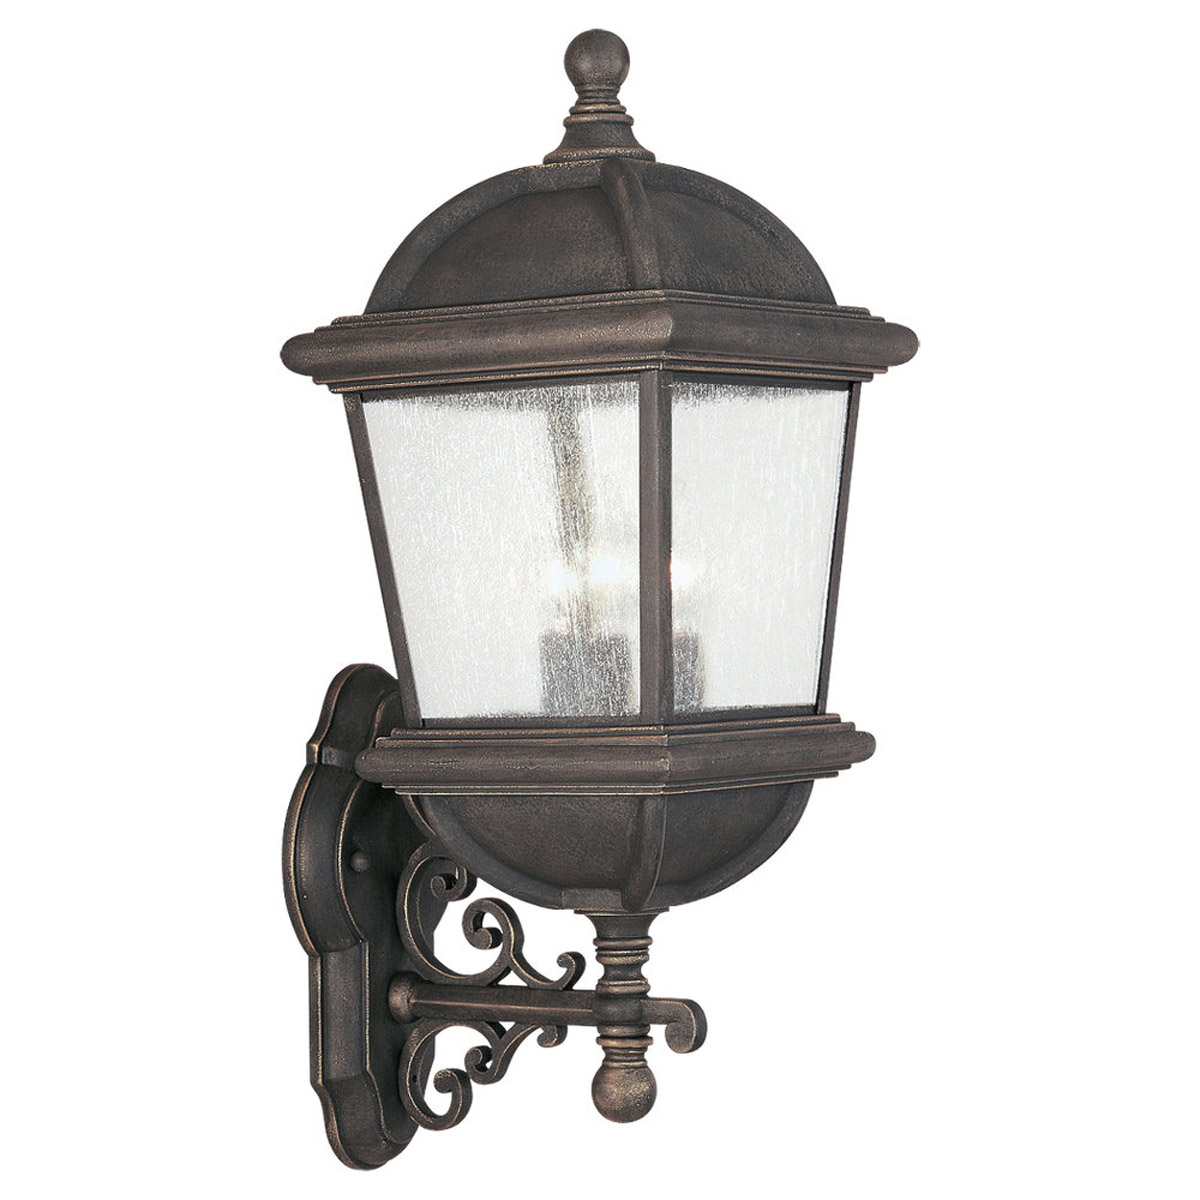 Sea Gull Lighting Charleston 3 Light Outdoor Wall Lantern in Gold Patina 8845-85 photo